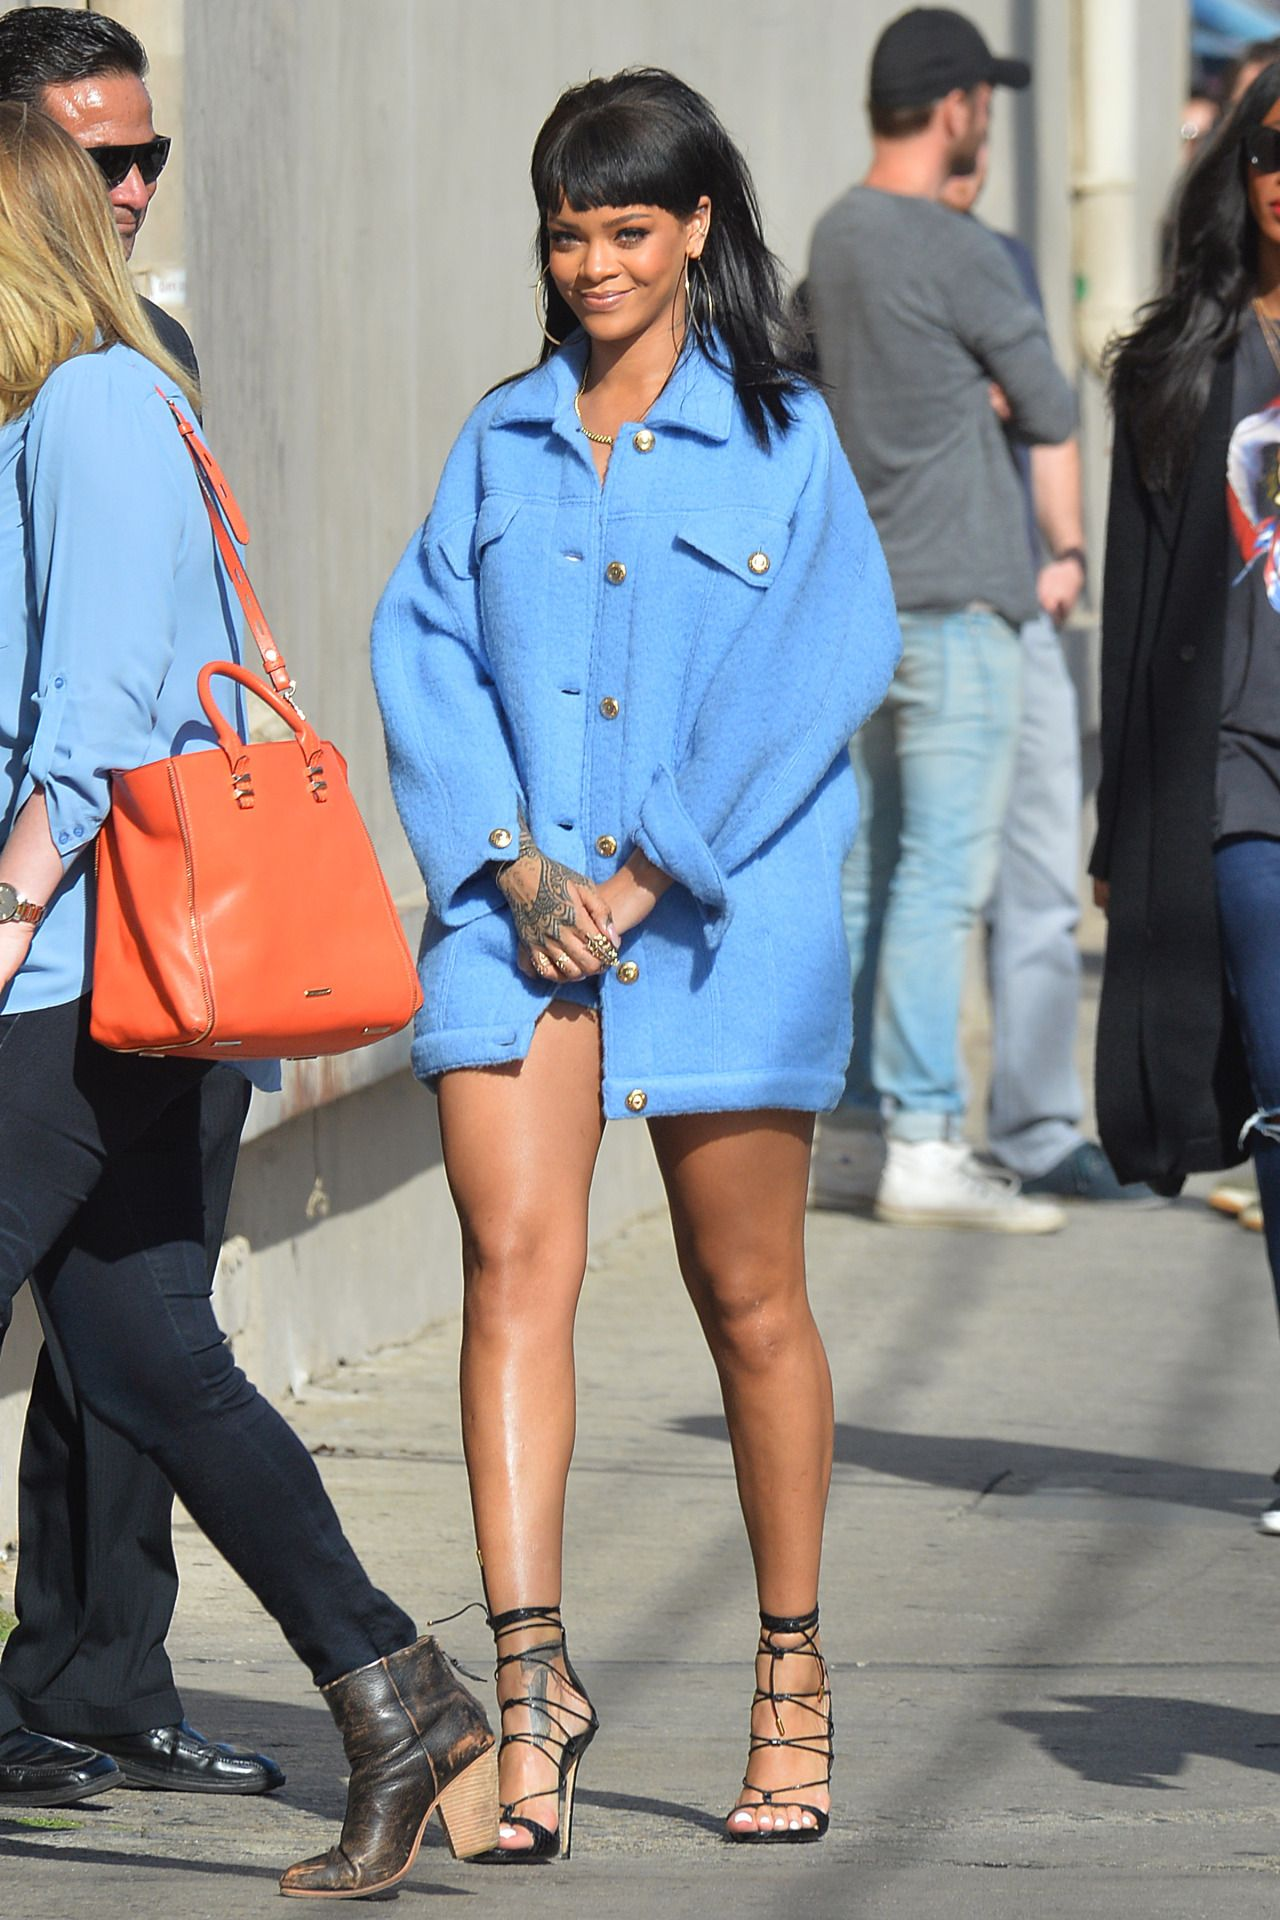 rihanna arriving at the jimmy kimmel live in los angeles